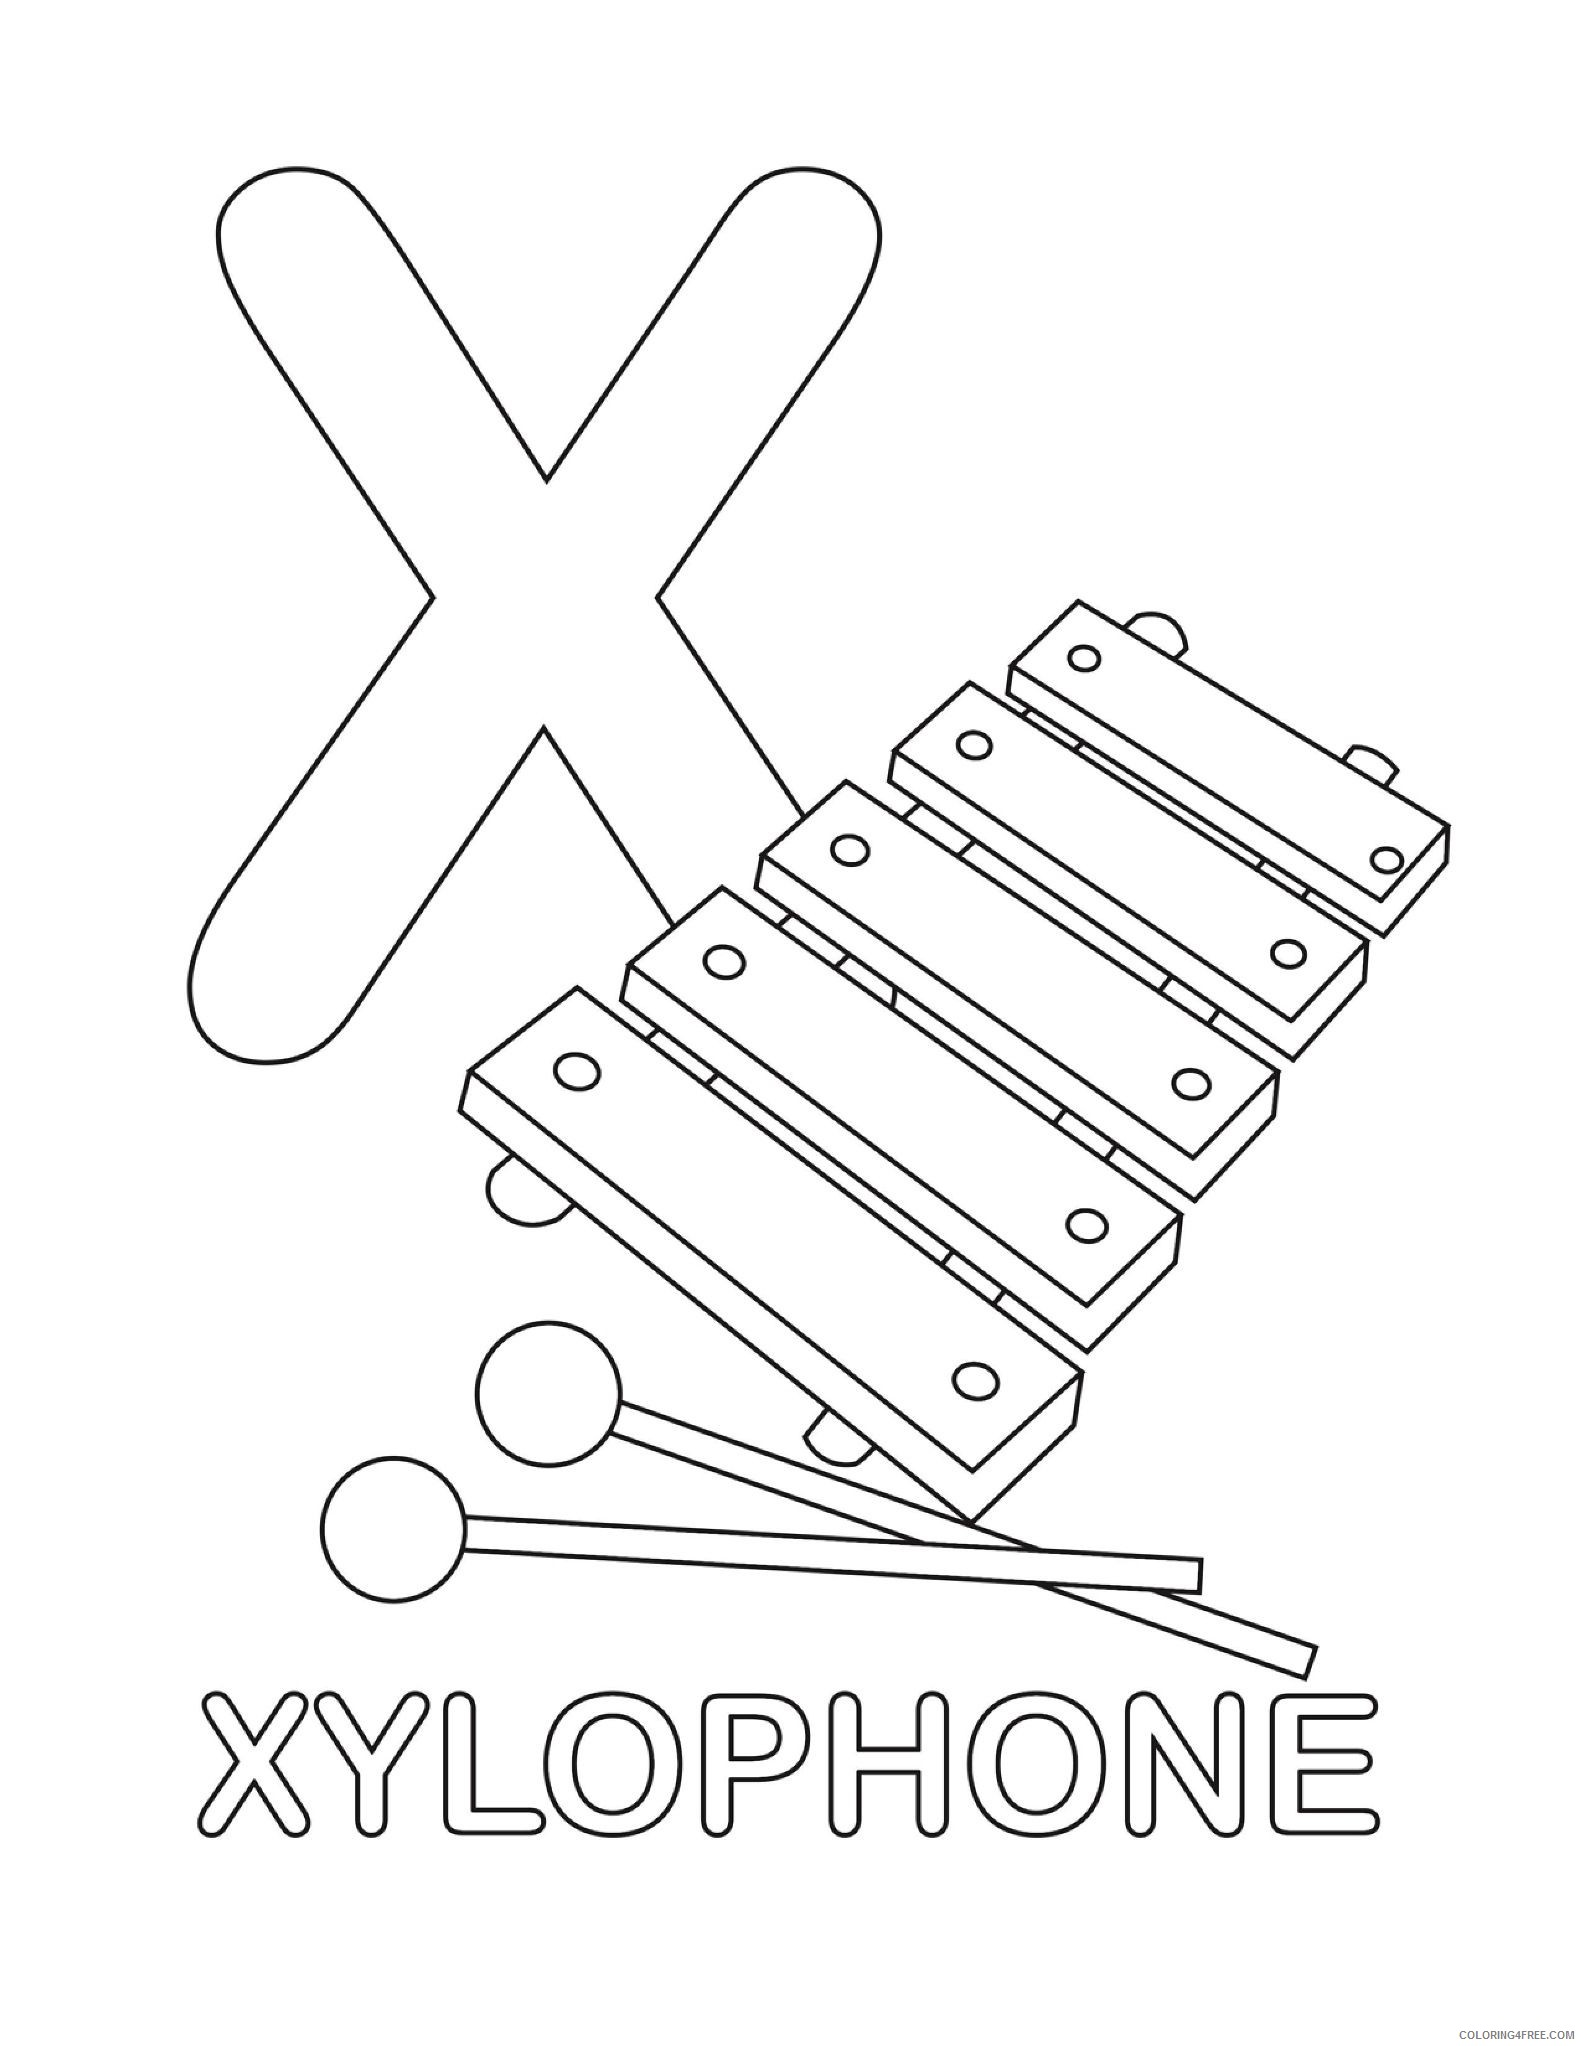 Xylophone coloring page | Free Printable Coloring Pages | 2046x1581